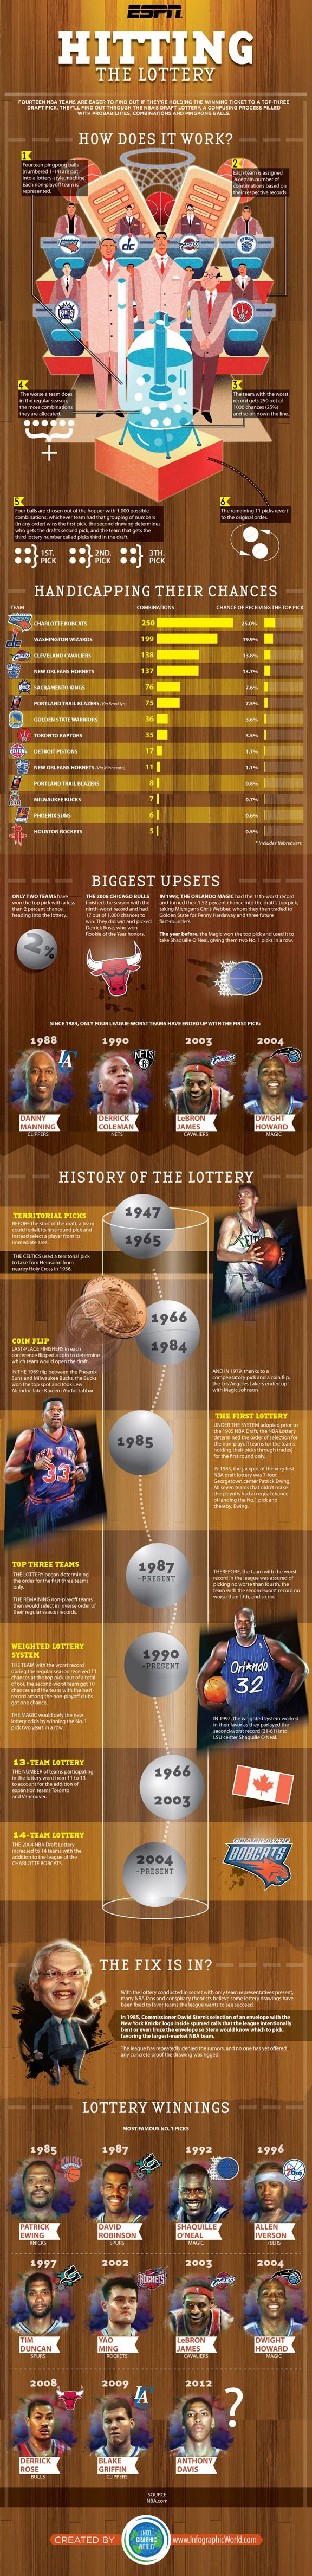 The Ultimate NBA Draft Lottery Infographic - Sports Pictures, Images, Fan Videos, Galleries - Visuals Blog - ESPN Playbook - ESPN